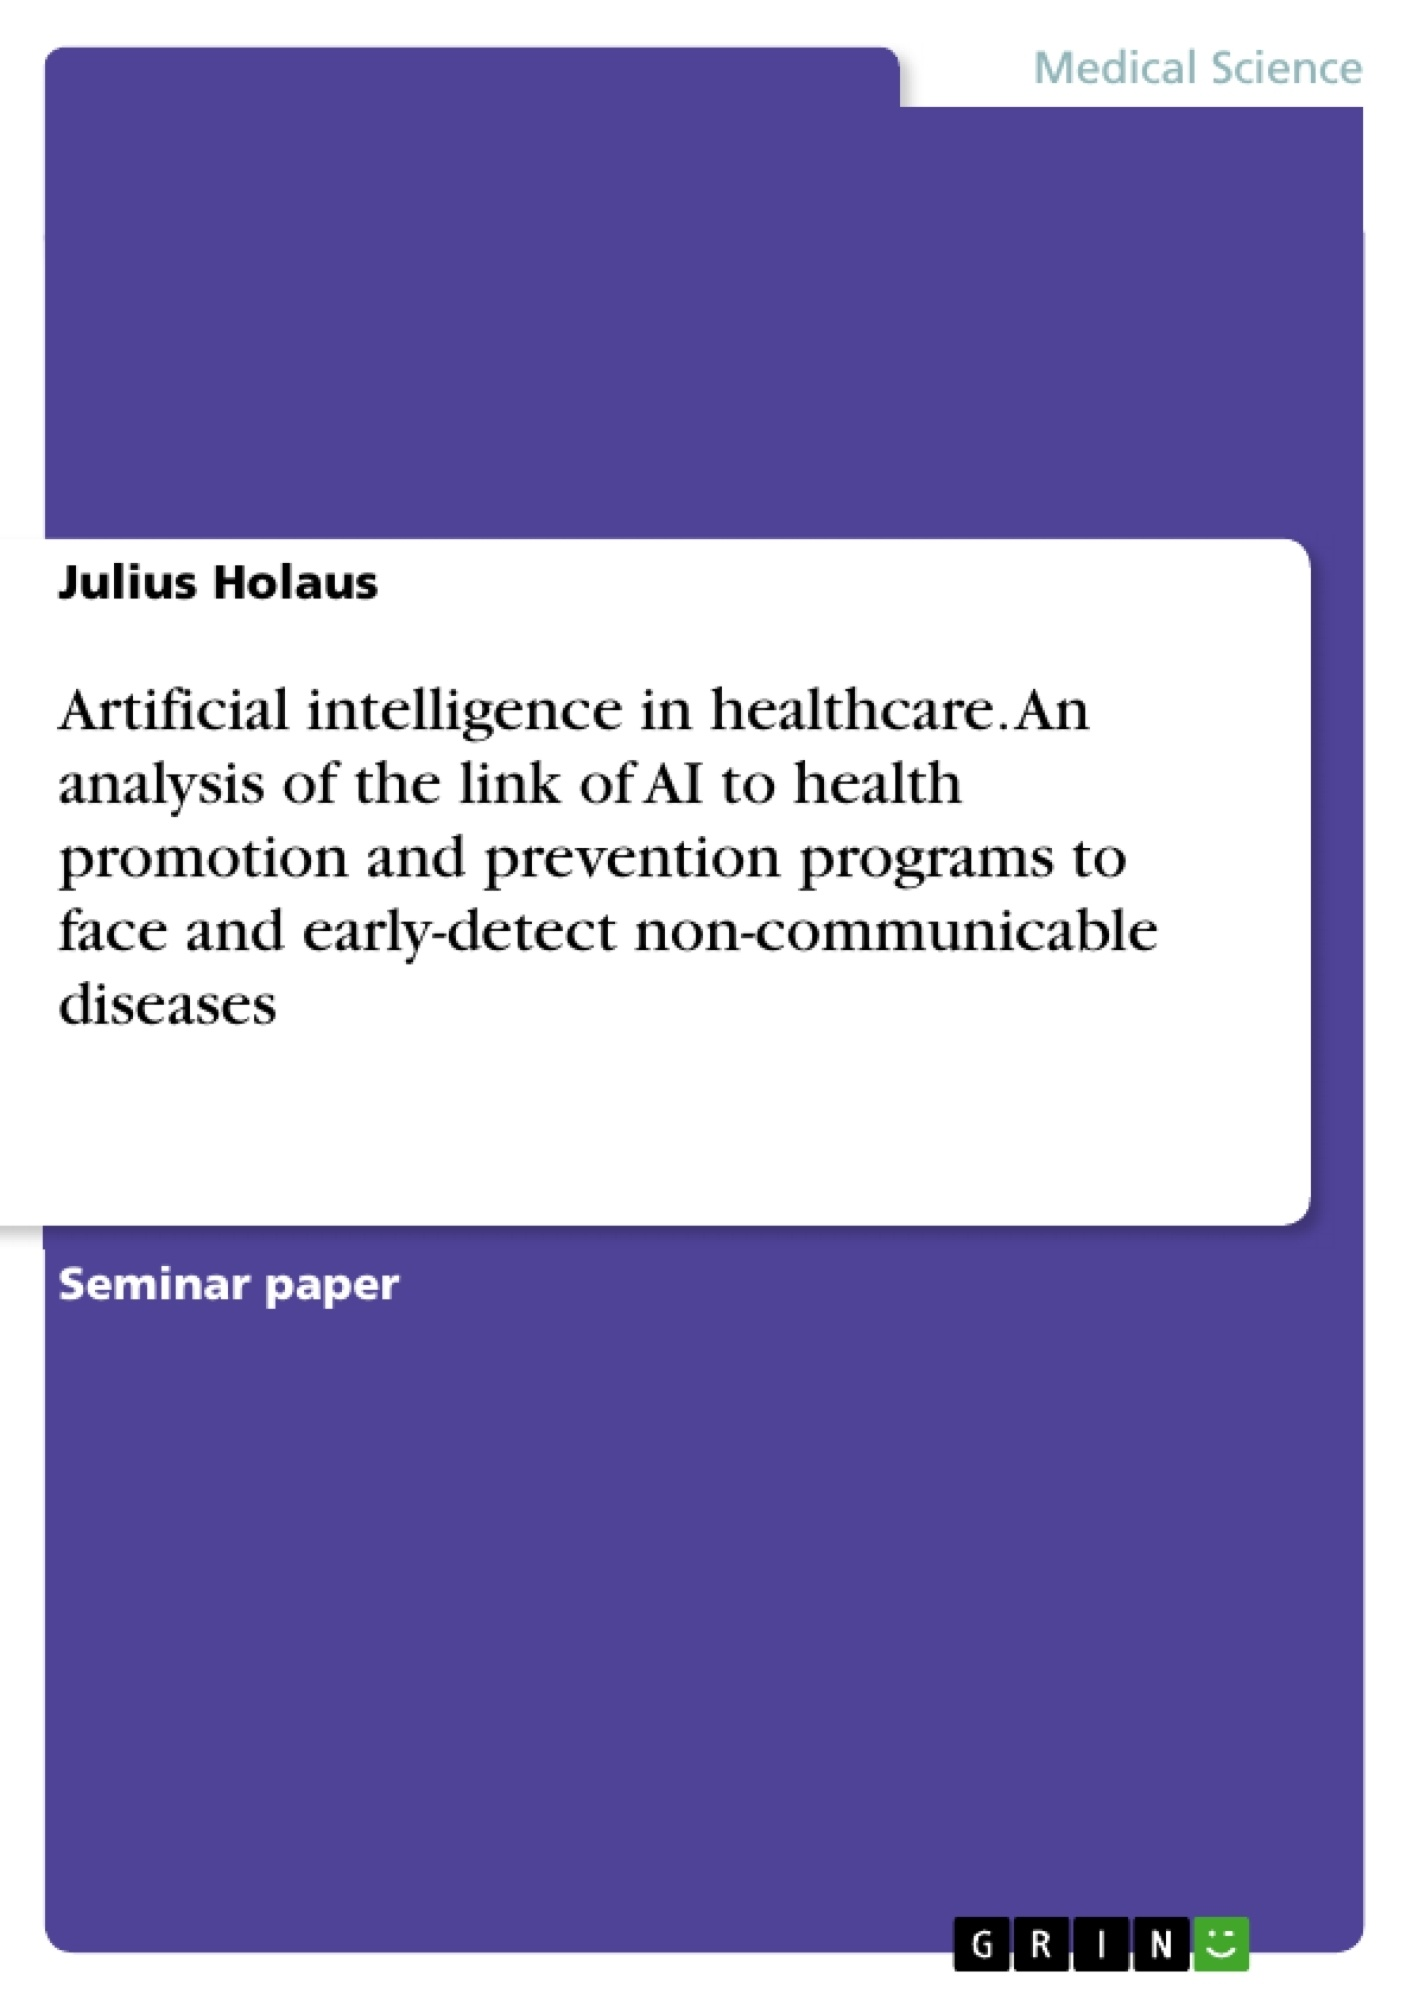 Title: Artificial intelligence in healthcare. An analysis of the link of AI to health promotion and prevention programs to face and early-detect non-communicable diseases